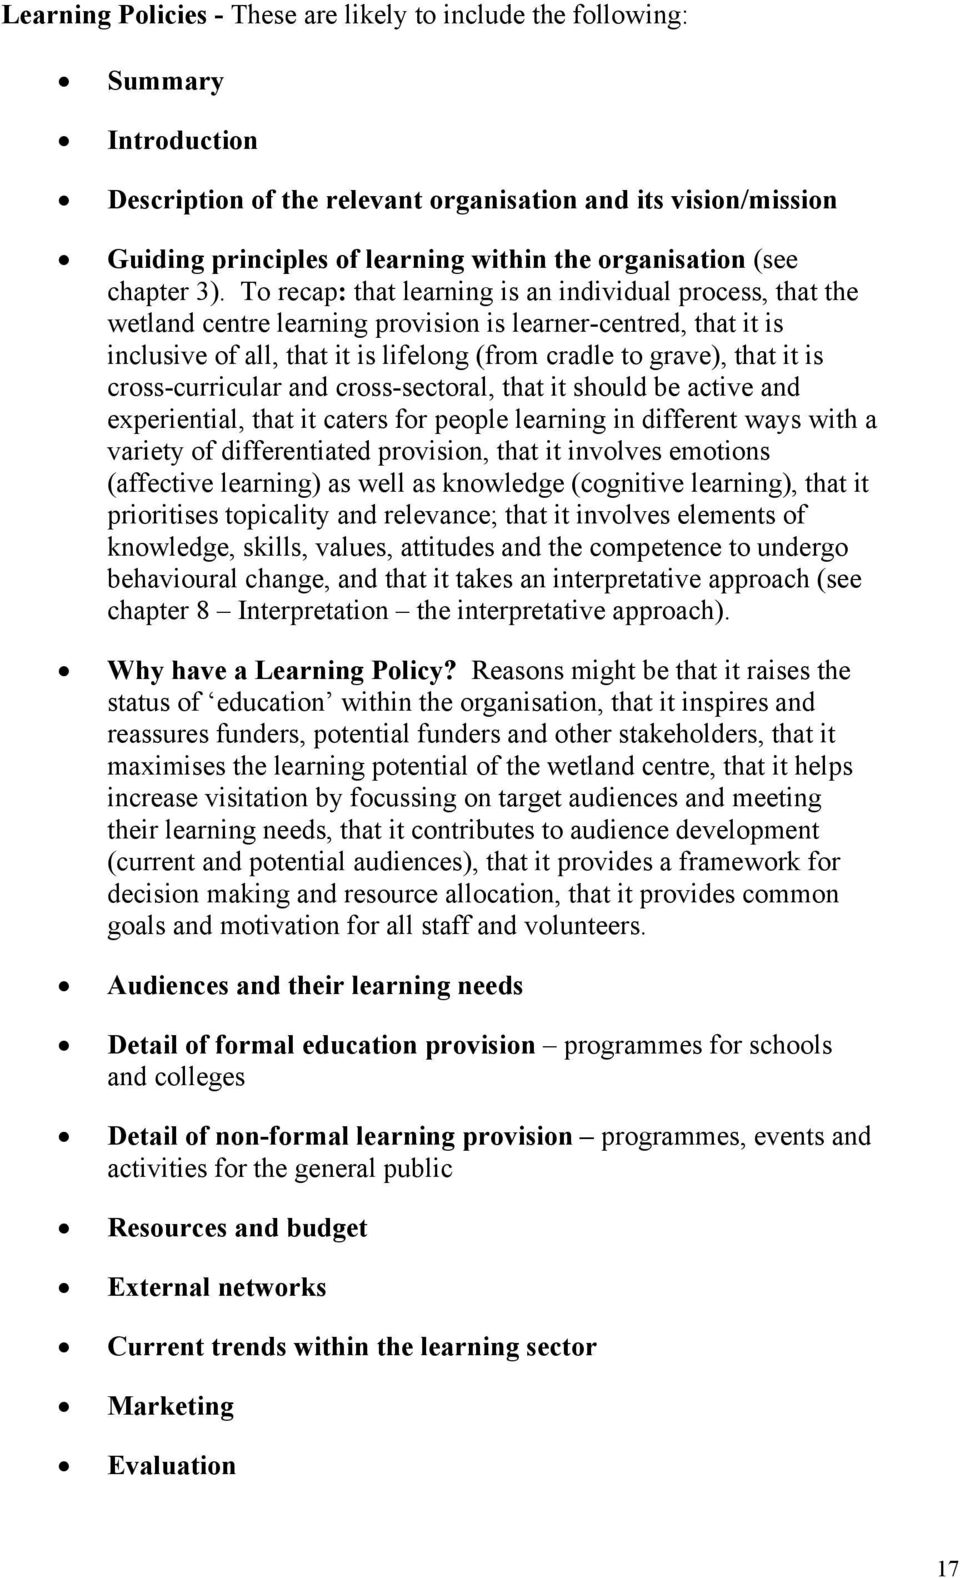 To recap: that learning is an individual process, that the wetland centre learning provision is learner-centred, that it is inclusive of all, that it is lifelong (from cradle to grave), that it is